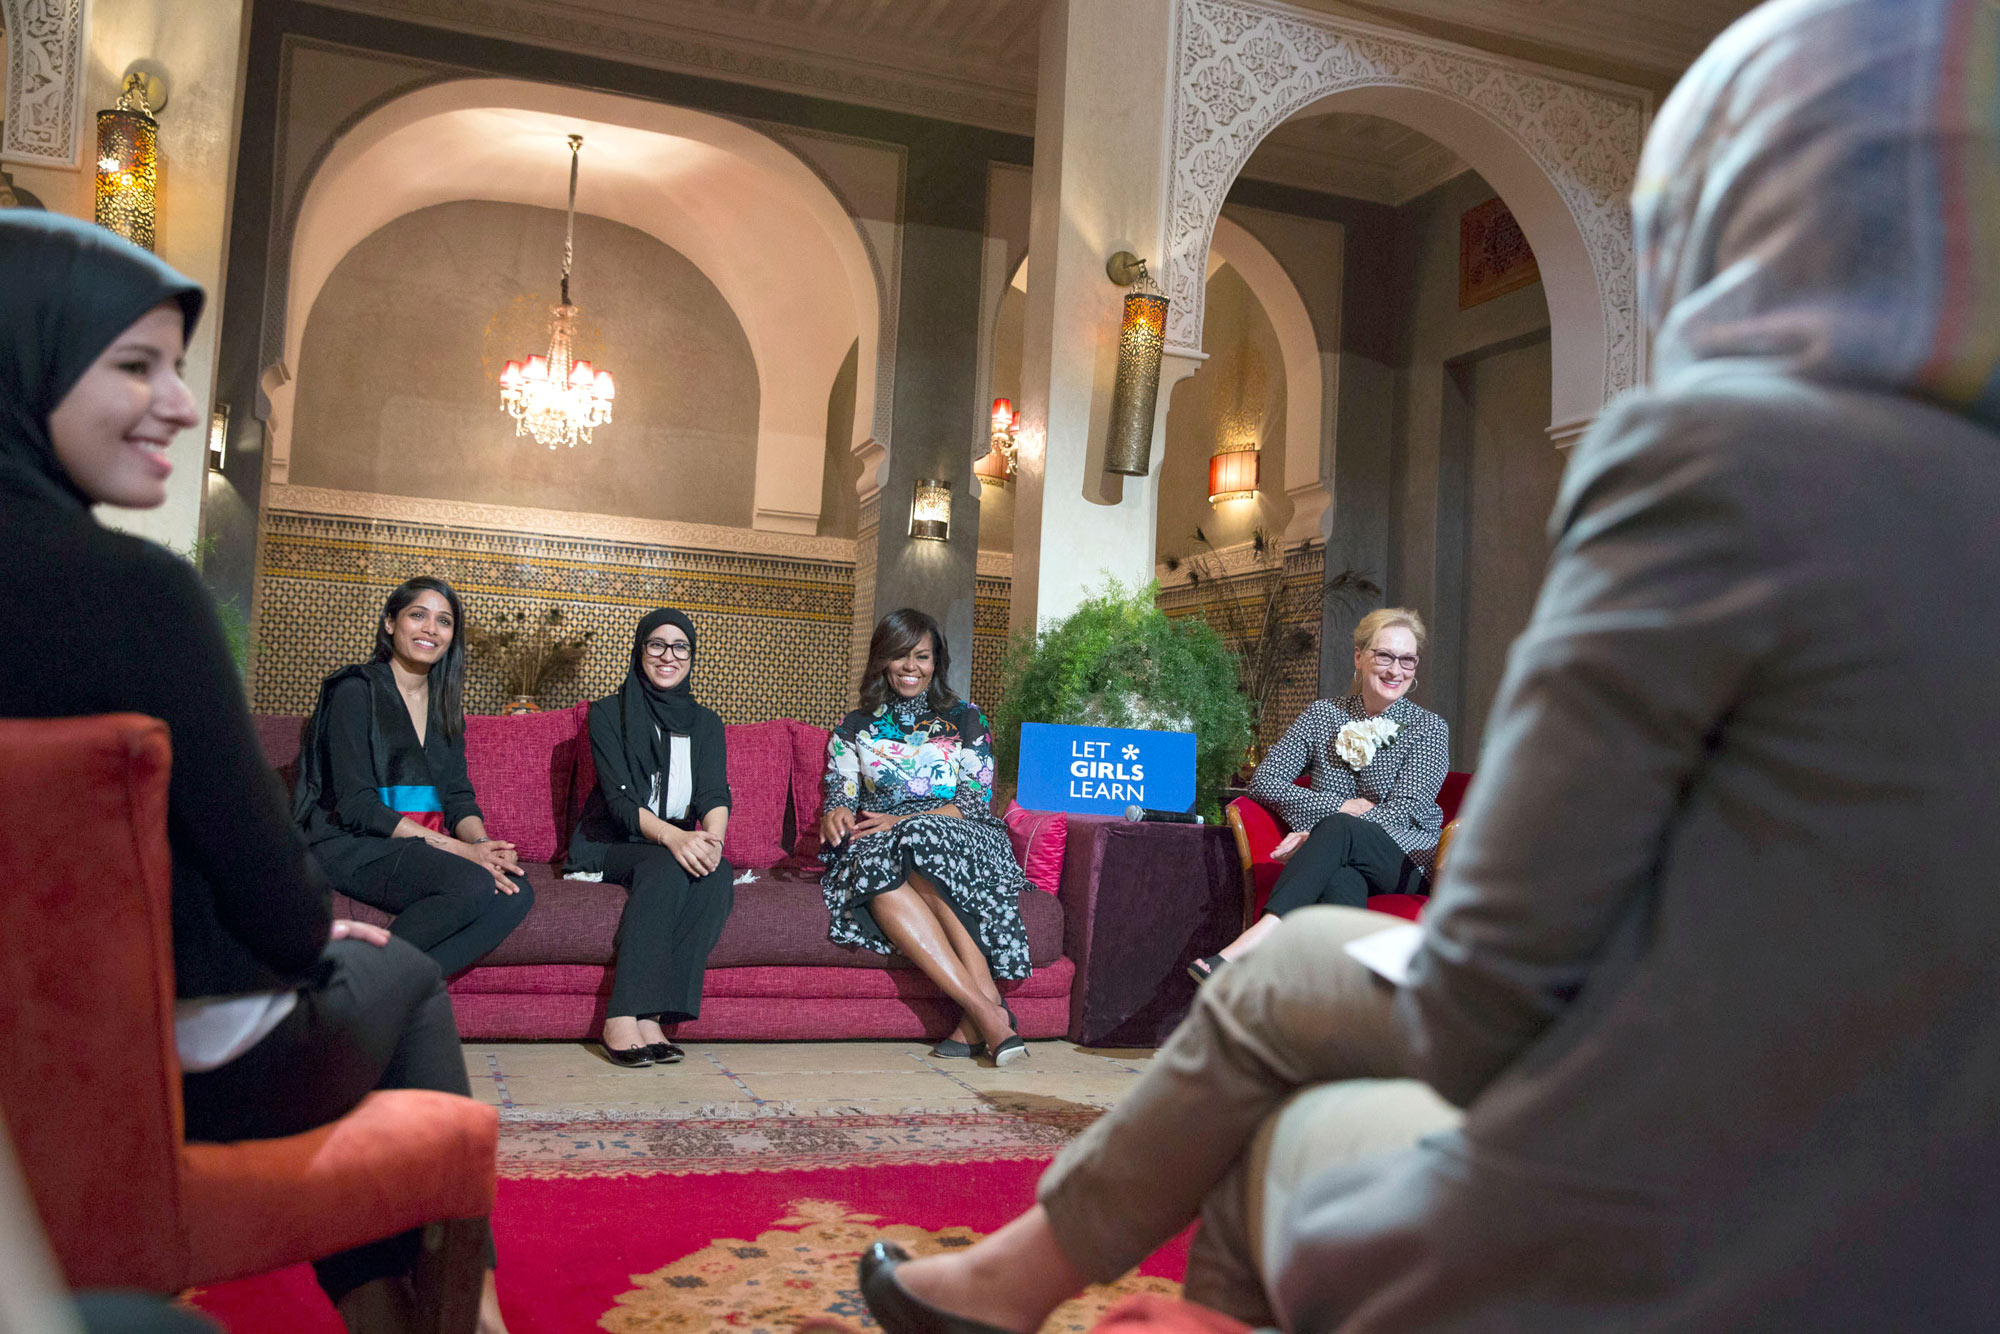 First Lady Michelle Obama, Meryl Streep and Freida Pinto participate in a conversation with girls, moderated by CNN's Isha Sesay, in support of the Let Girls Learn initiative, at Dar Diafa Restaurant in Marrakech, Morocco, June 28, 2016. (Official White House Photo by Amanda Lucidon)